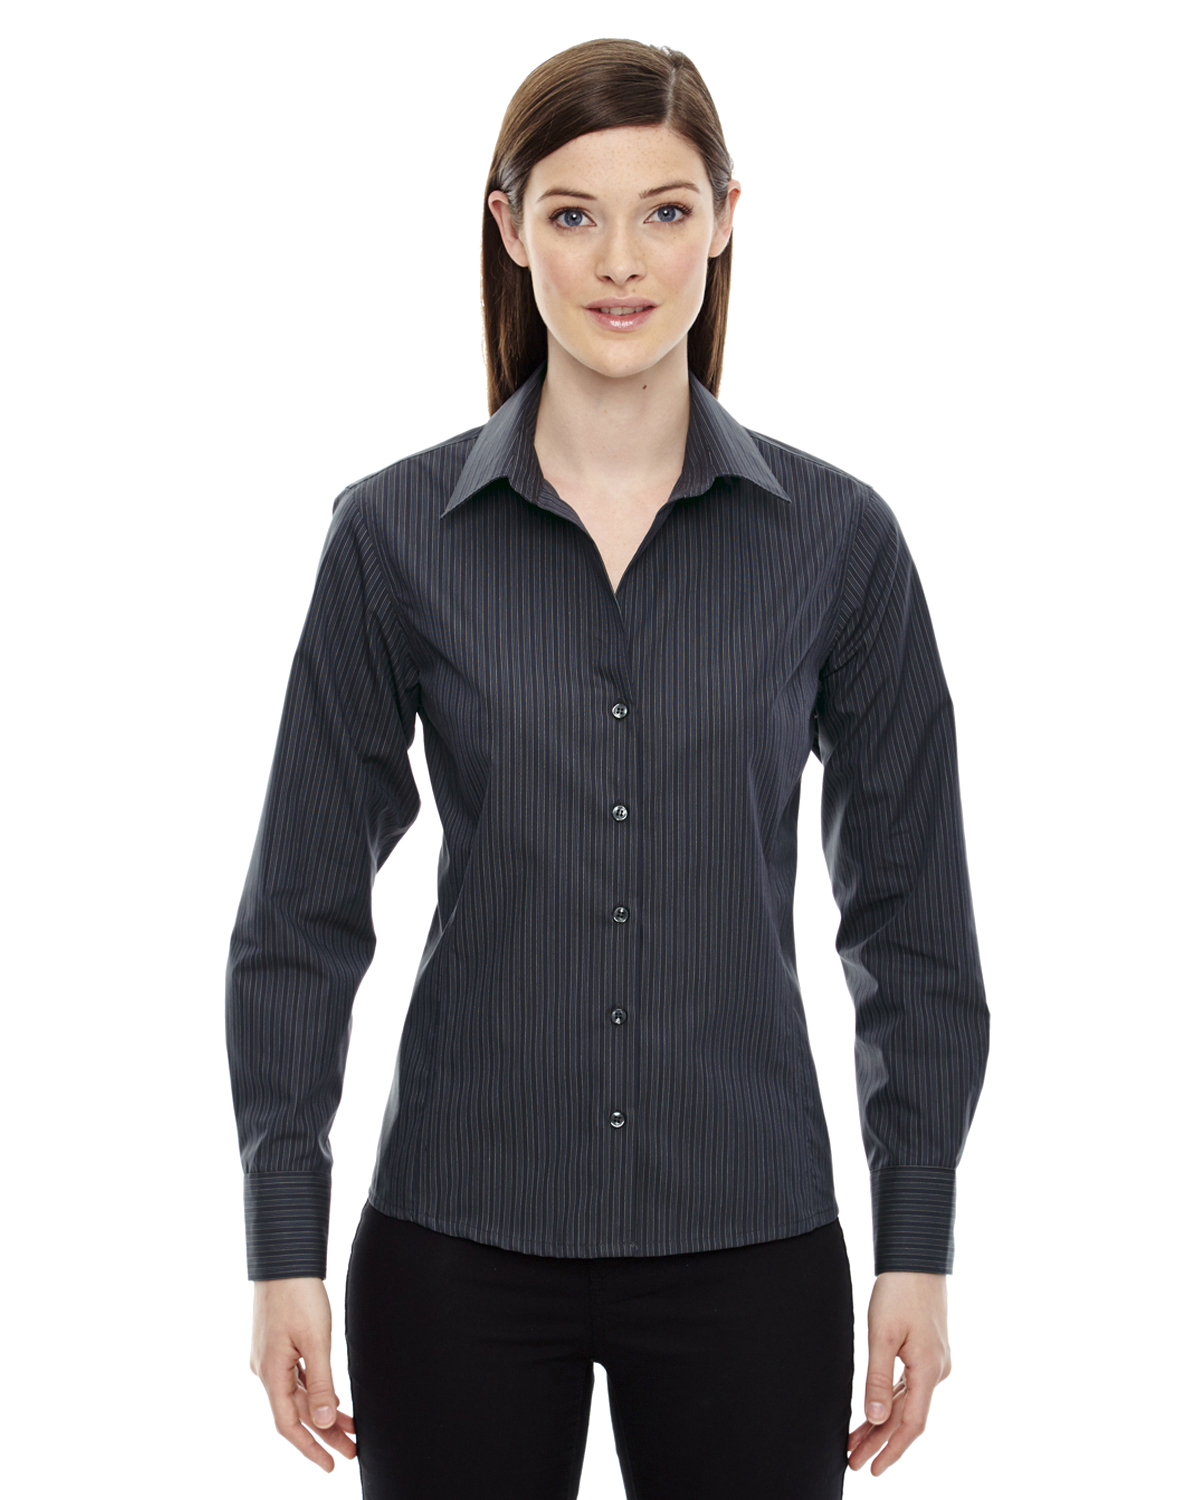 North end sport blue 78674 ladies striped shirt shirtmax for Wrinkle free shirts for women